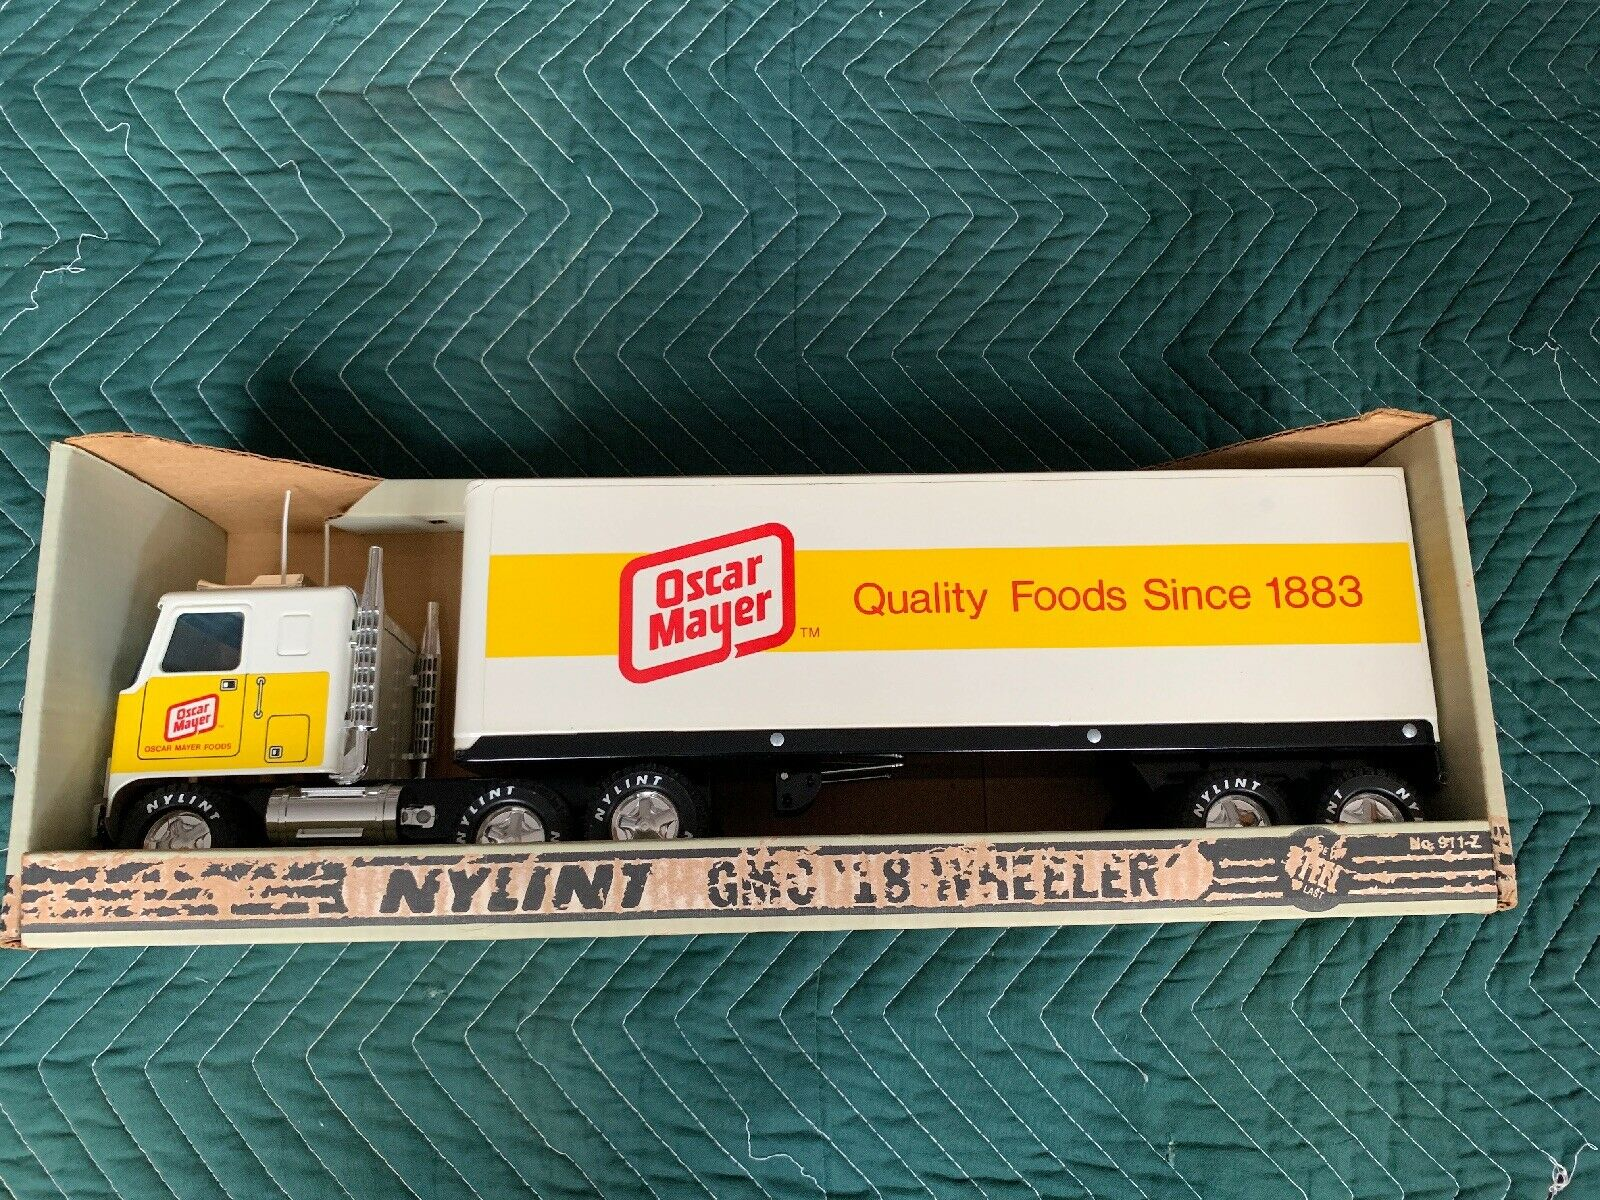 Nylint Gmc 18-wheeler Grün Giant In Box, Vintage